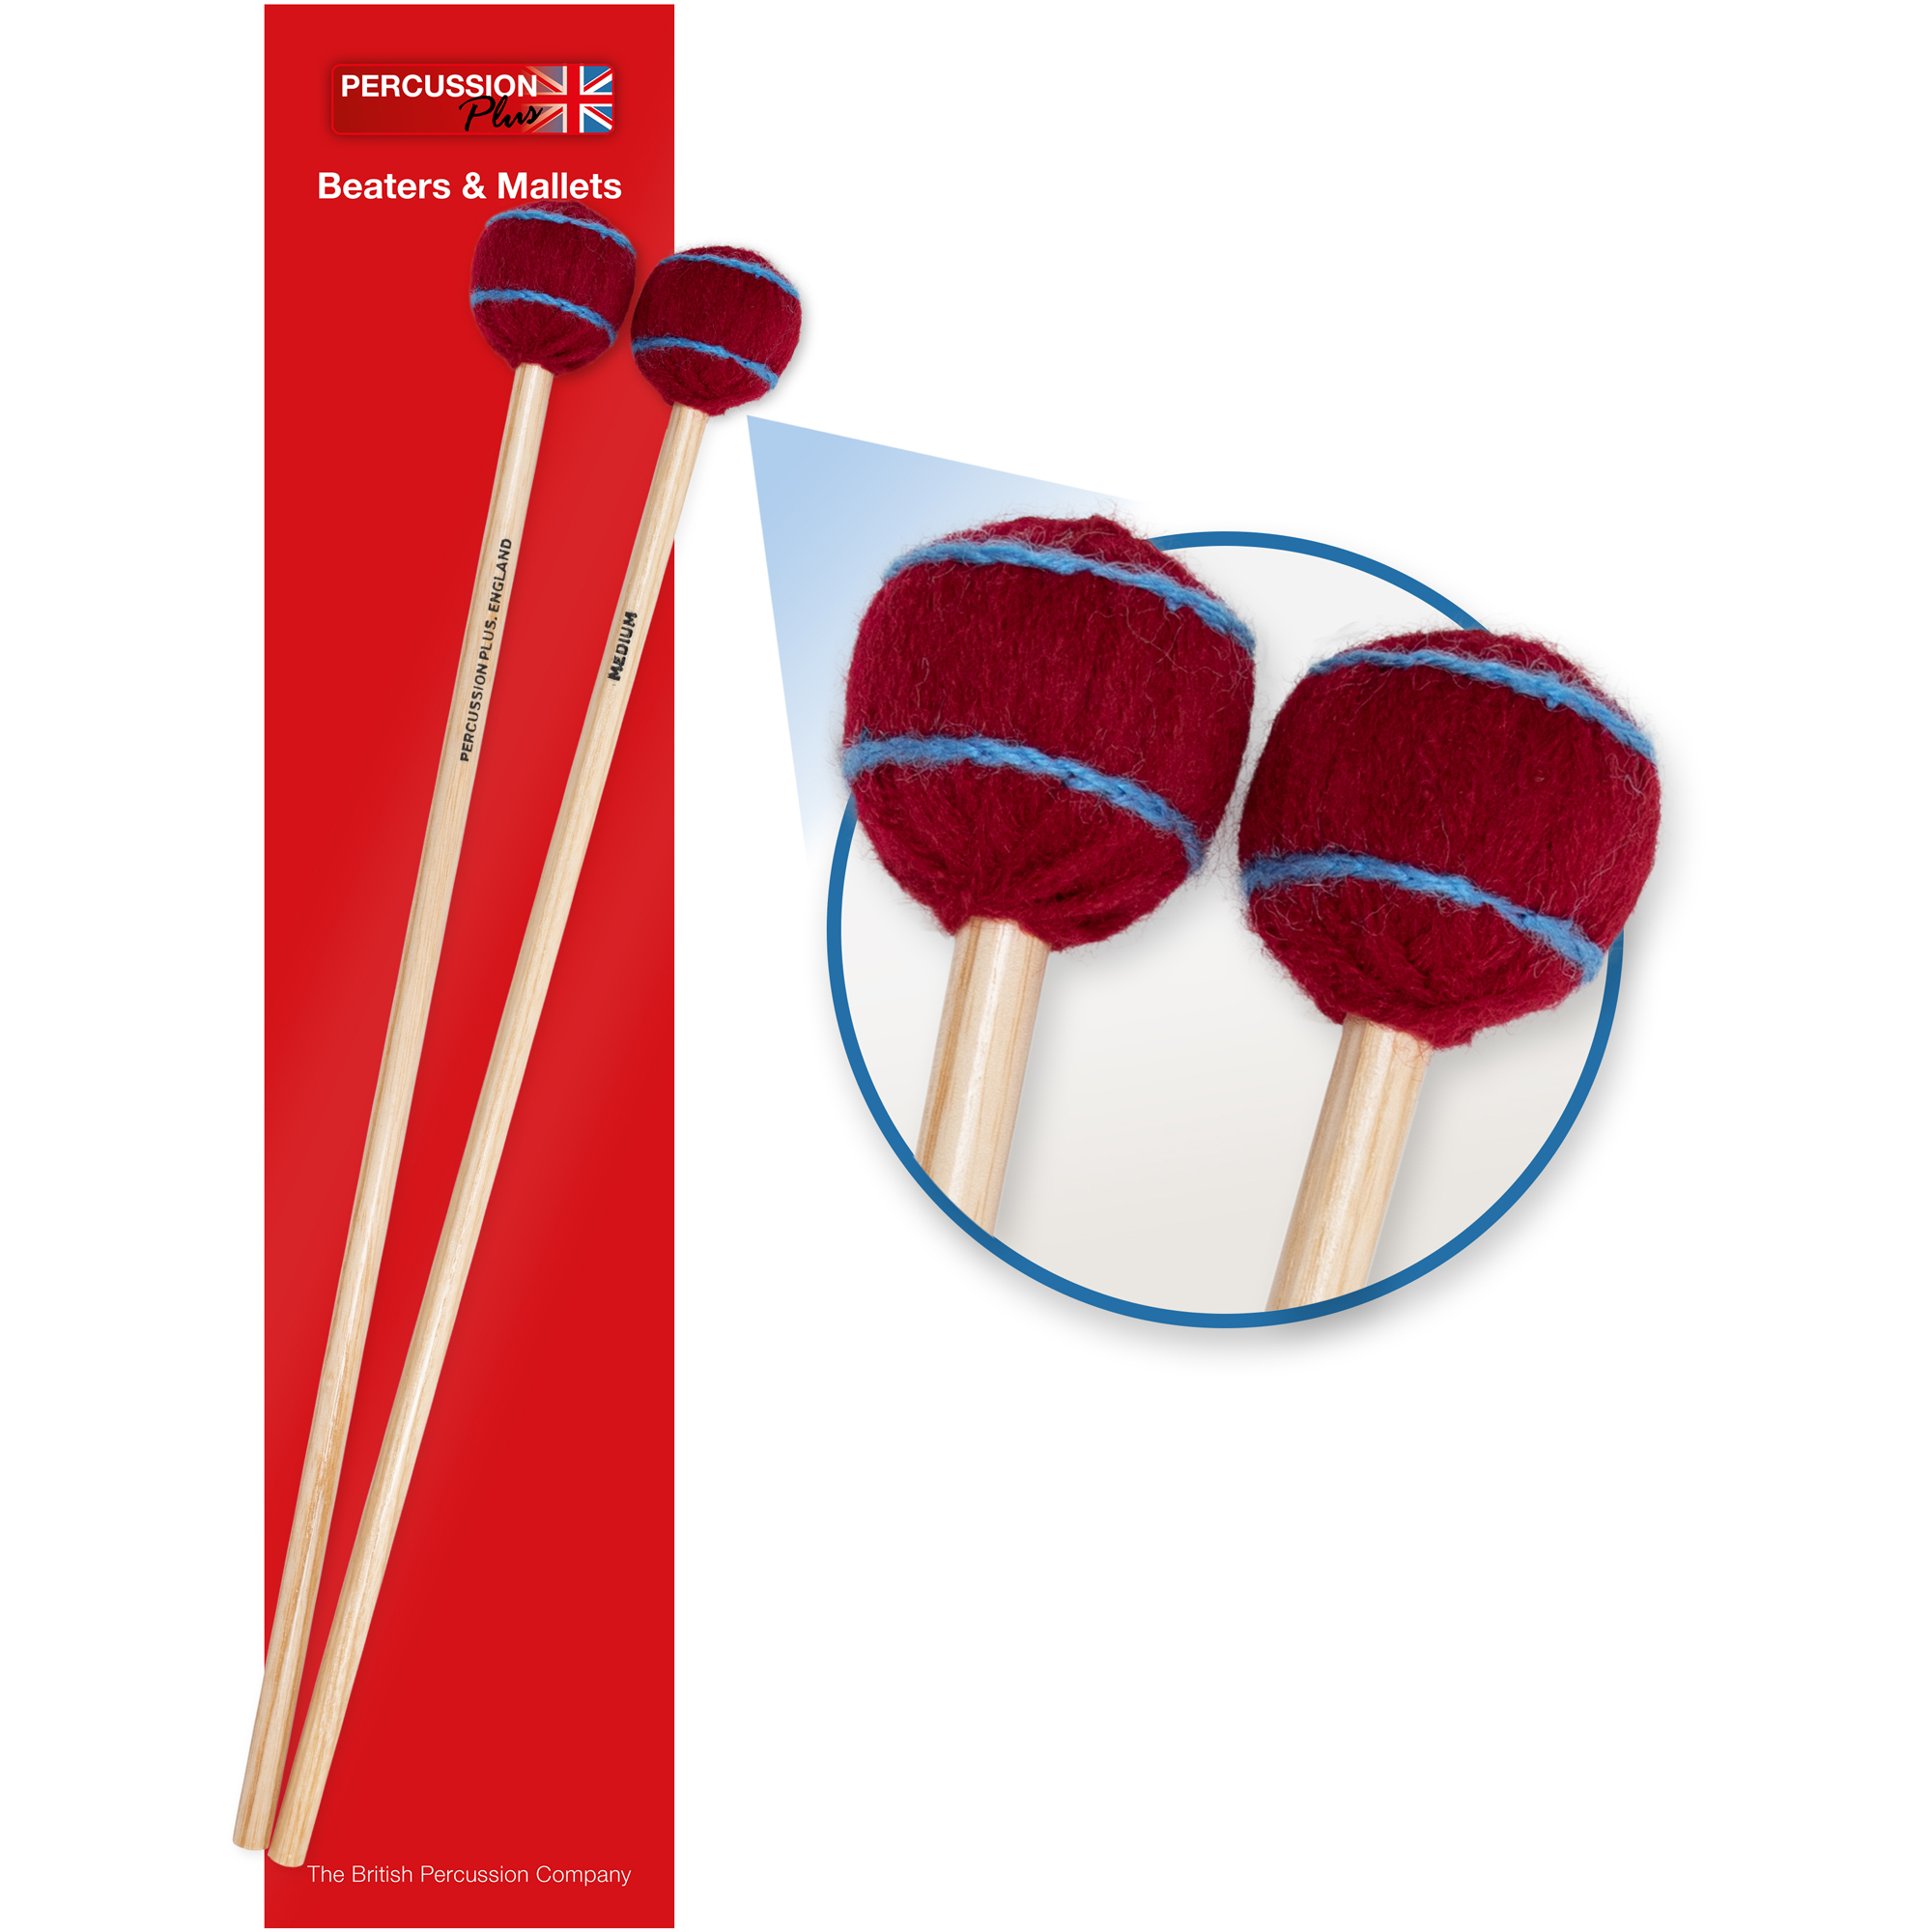 Percussion Plus pair of wool mallets - medium